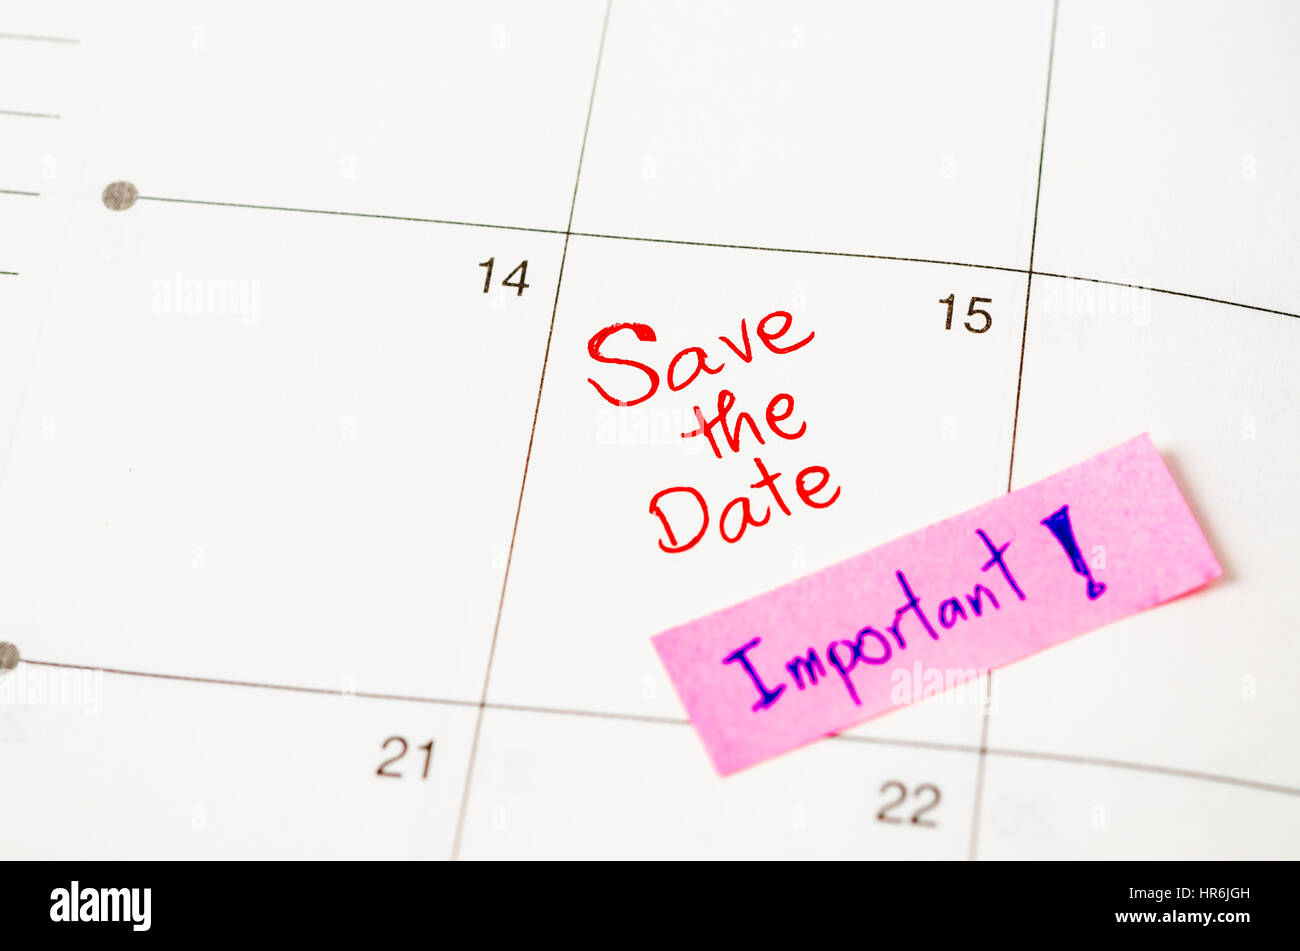 Save The Date Template Stock Photos & Save The Date